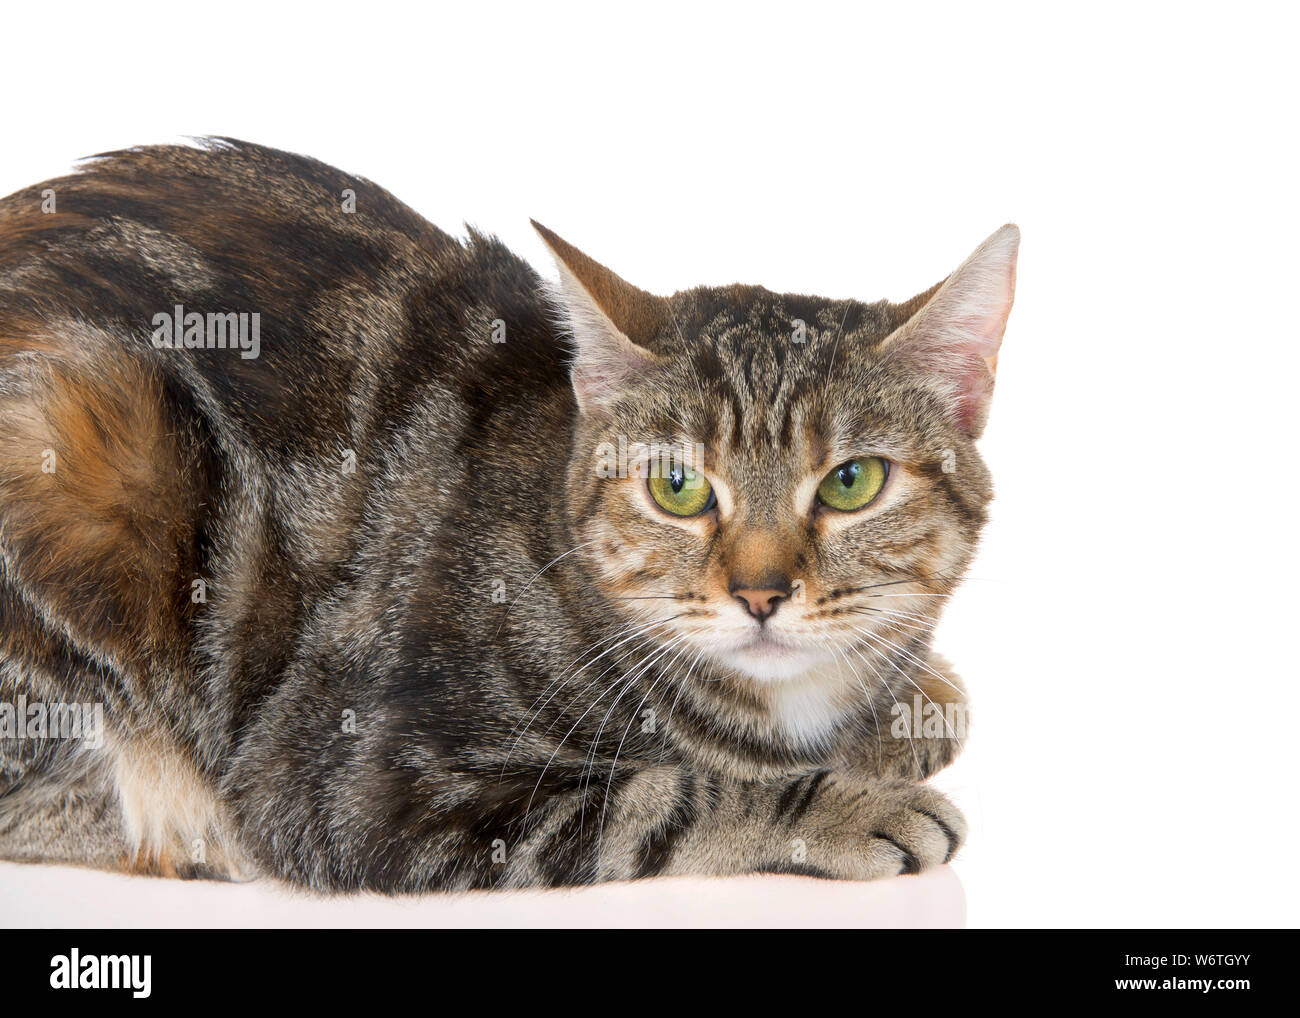 Close Up Of Bengal Tabby Mix Cat With Green Eyes On White Background The Bengal Cat Is A Domesticated Cat Breed Created From Hybrids Of Domestic Cats Stock Photo Alamy